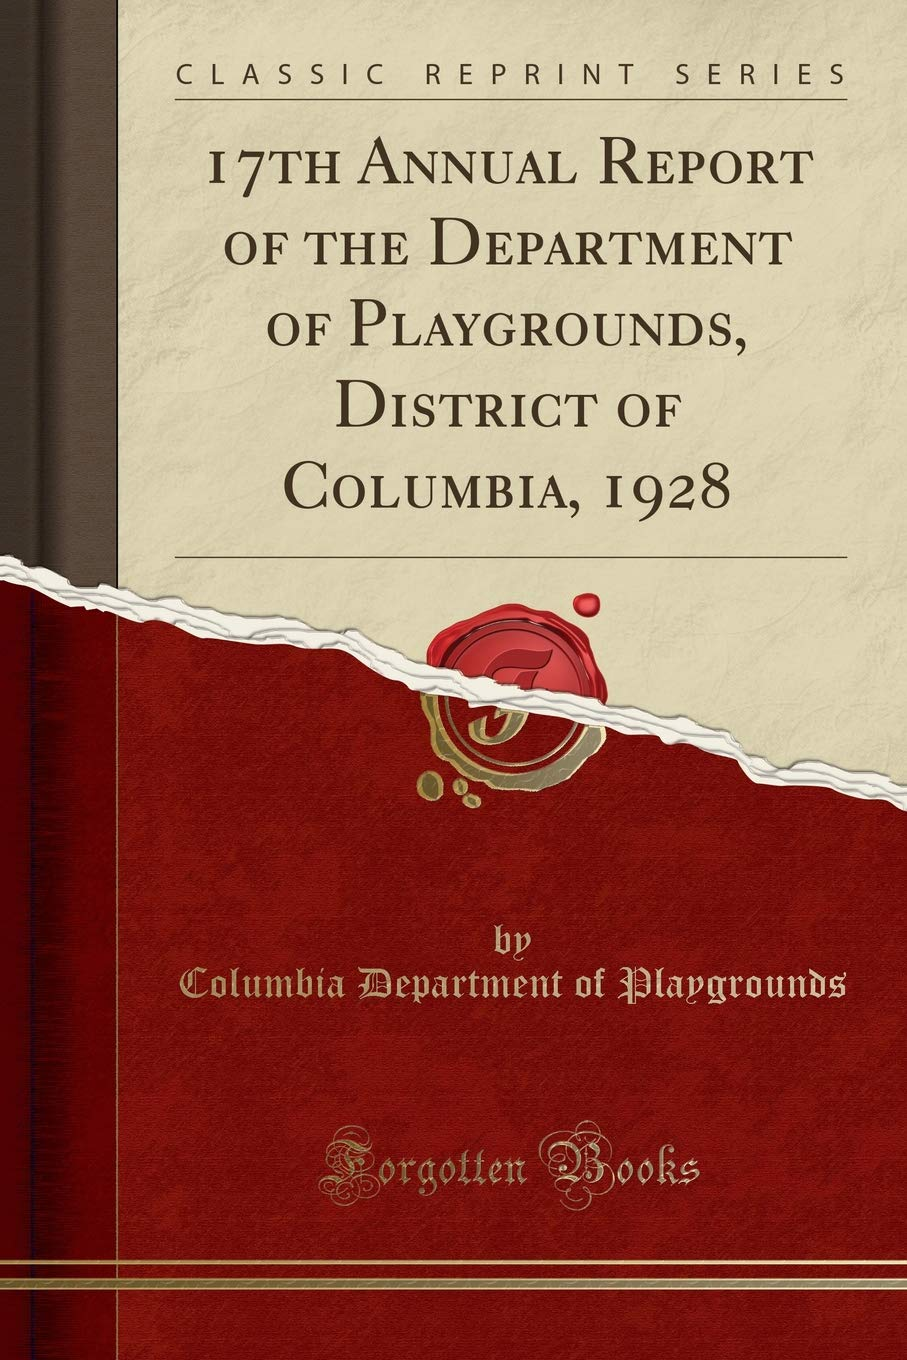 Download 17th Annual Report of the Department of Playgrounds, District of Columbia, 1928 (Classic Reprint) ebook